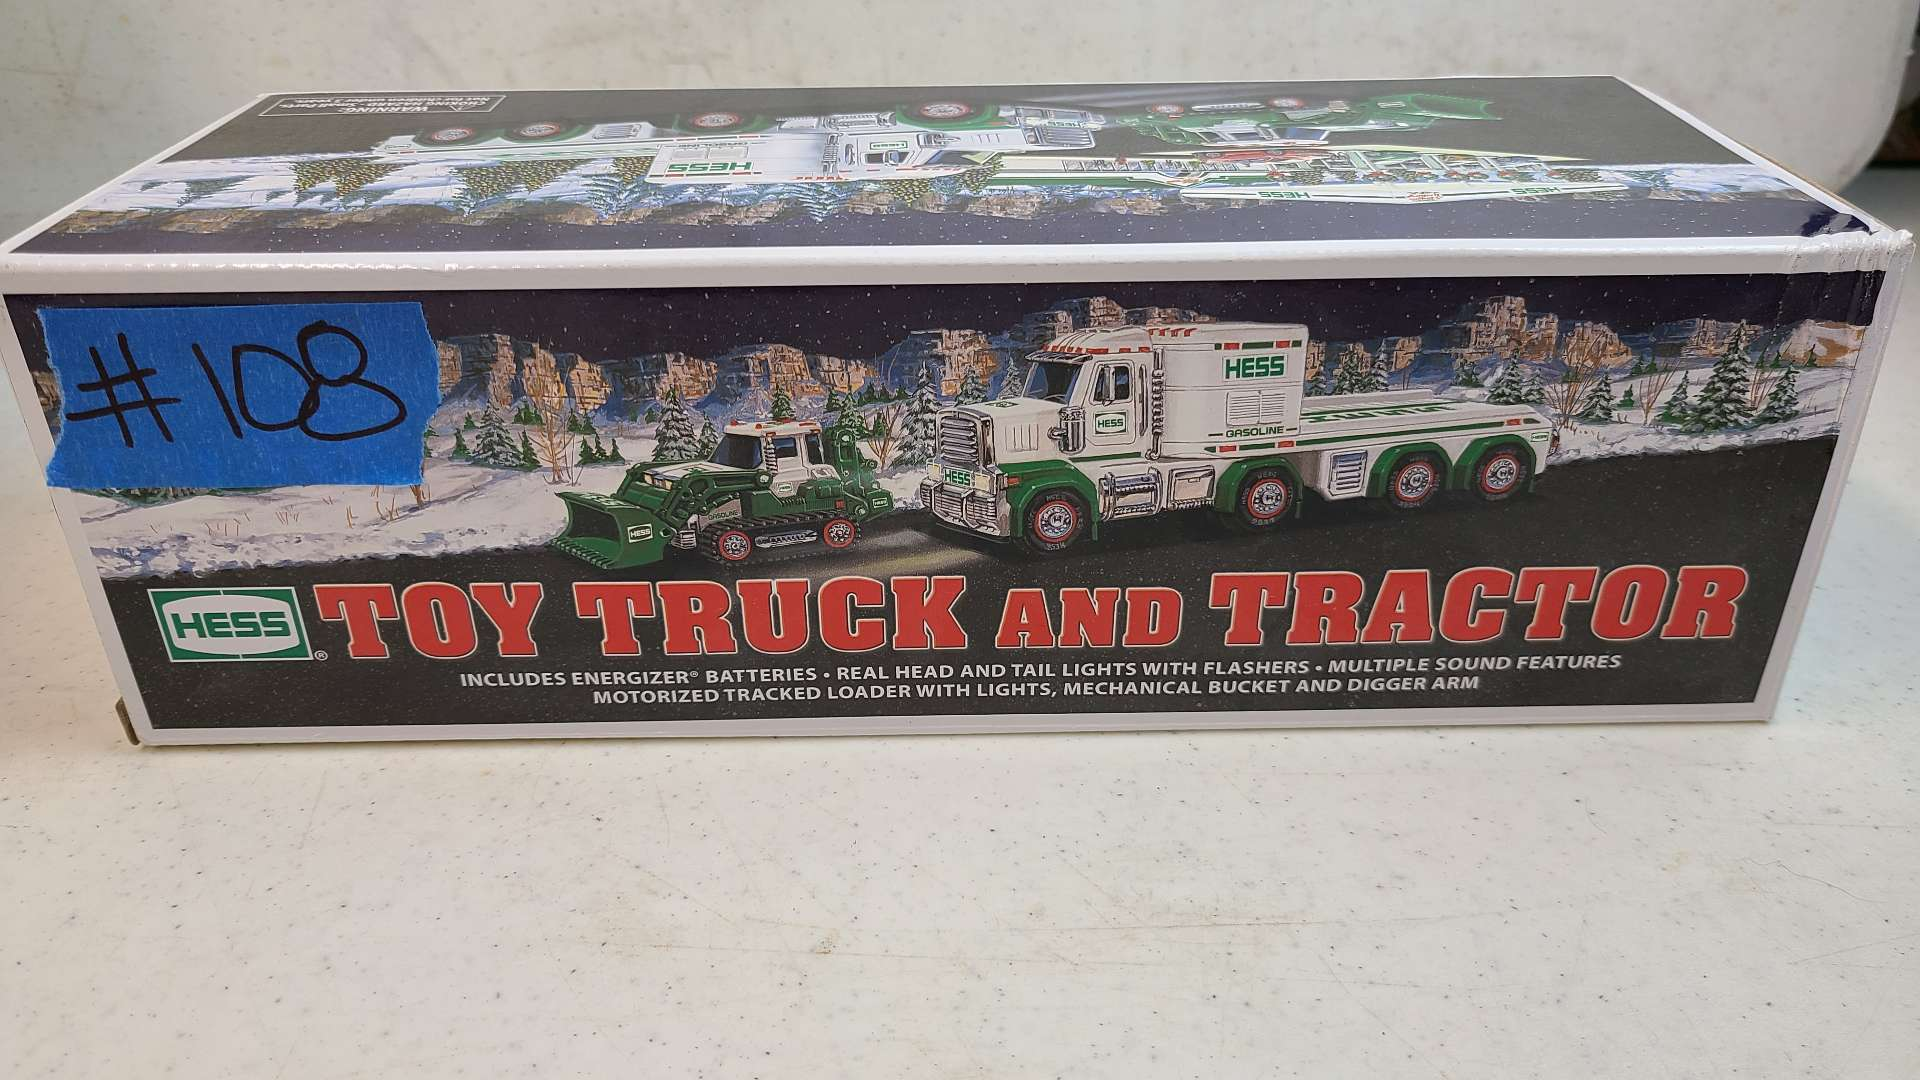 Lot # 108 Hess Toy Truck & Tractor W/ Box